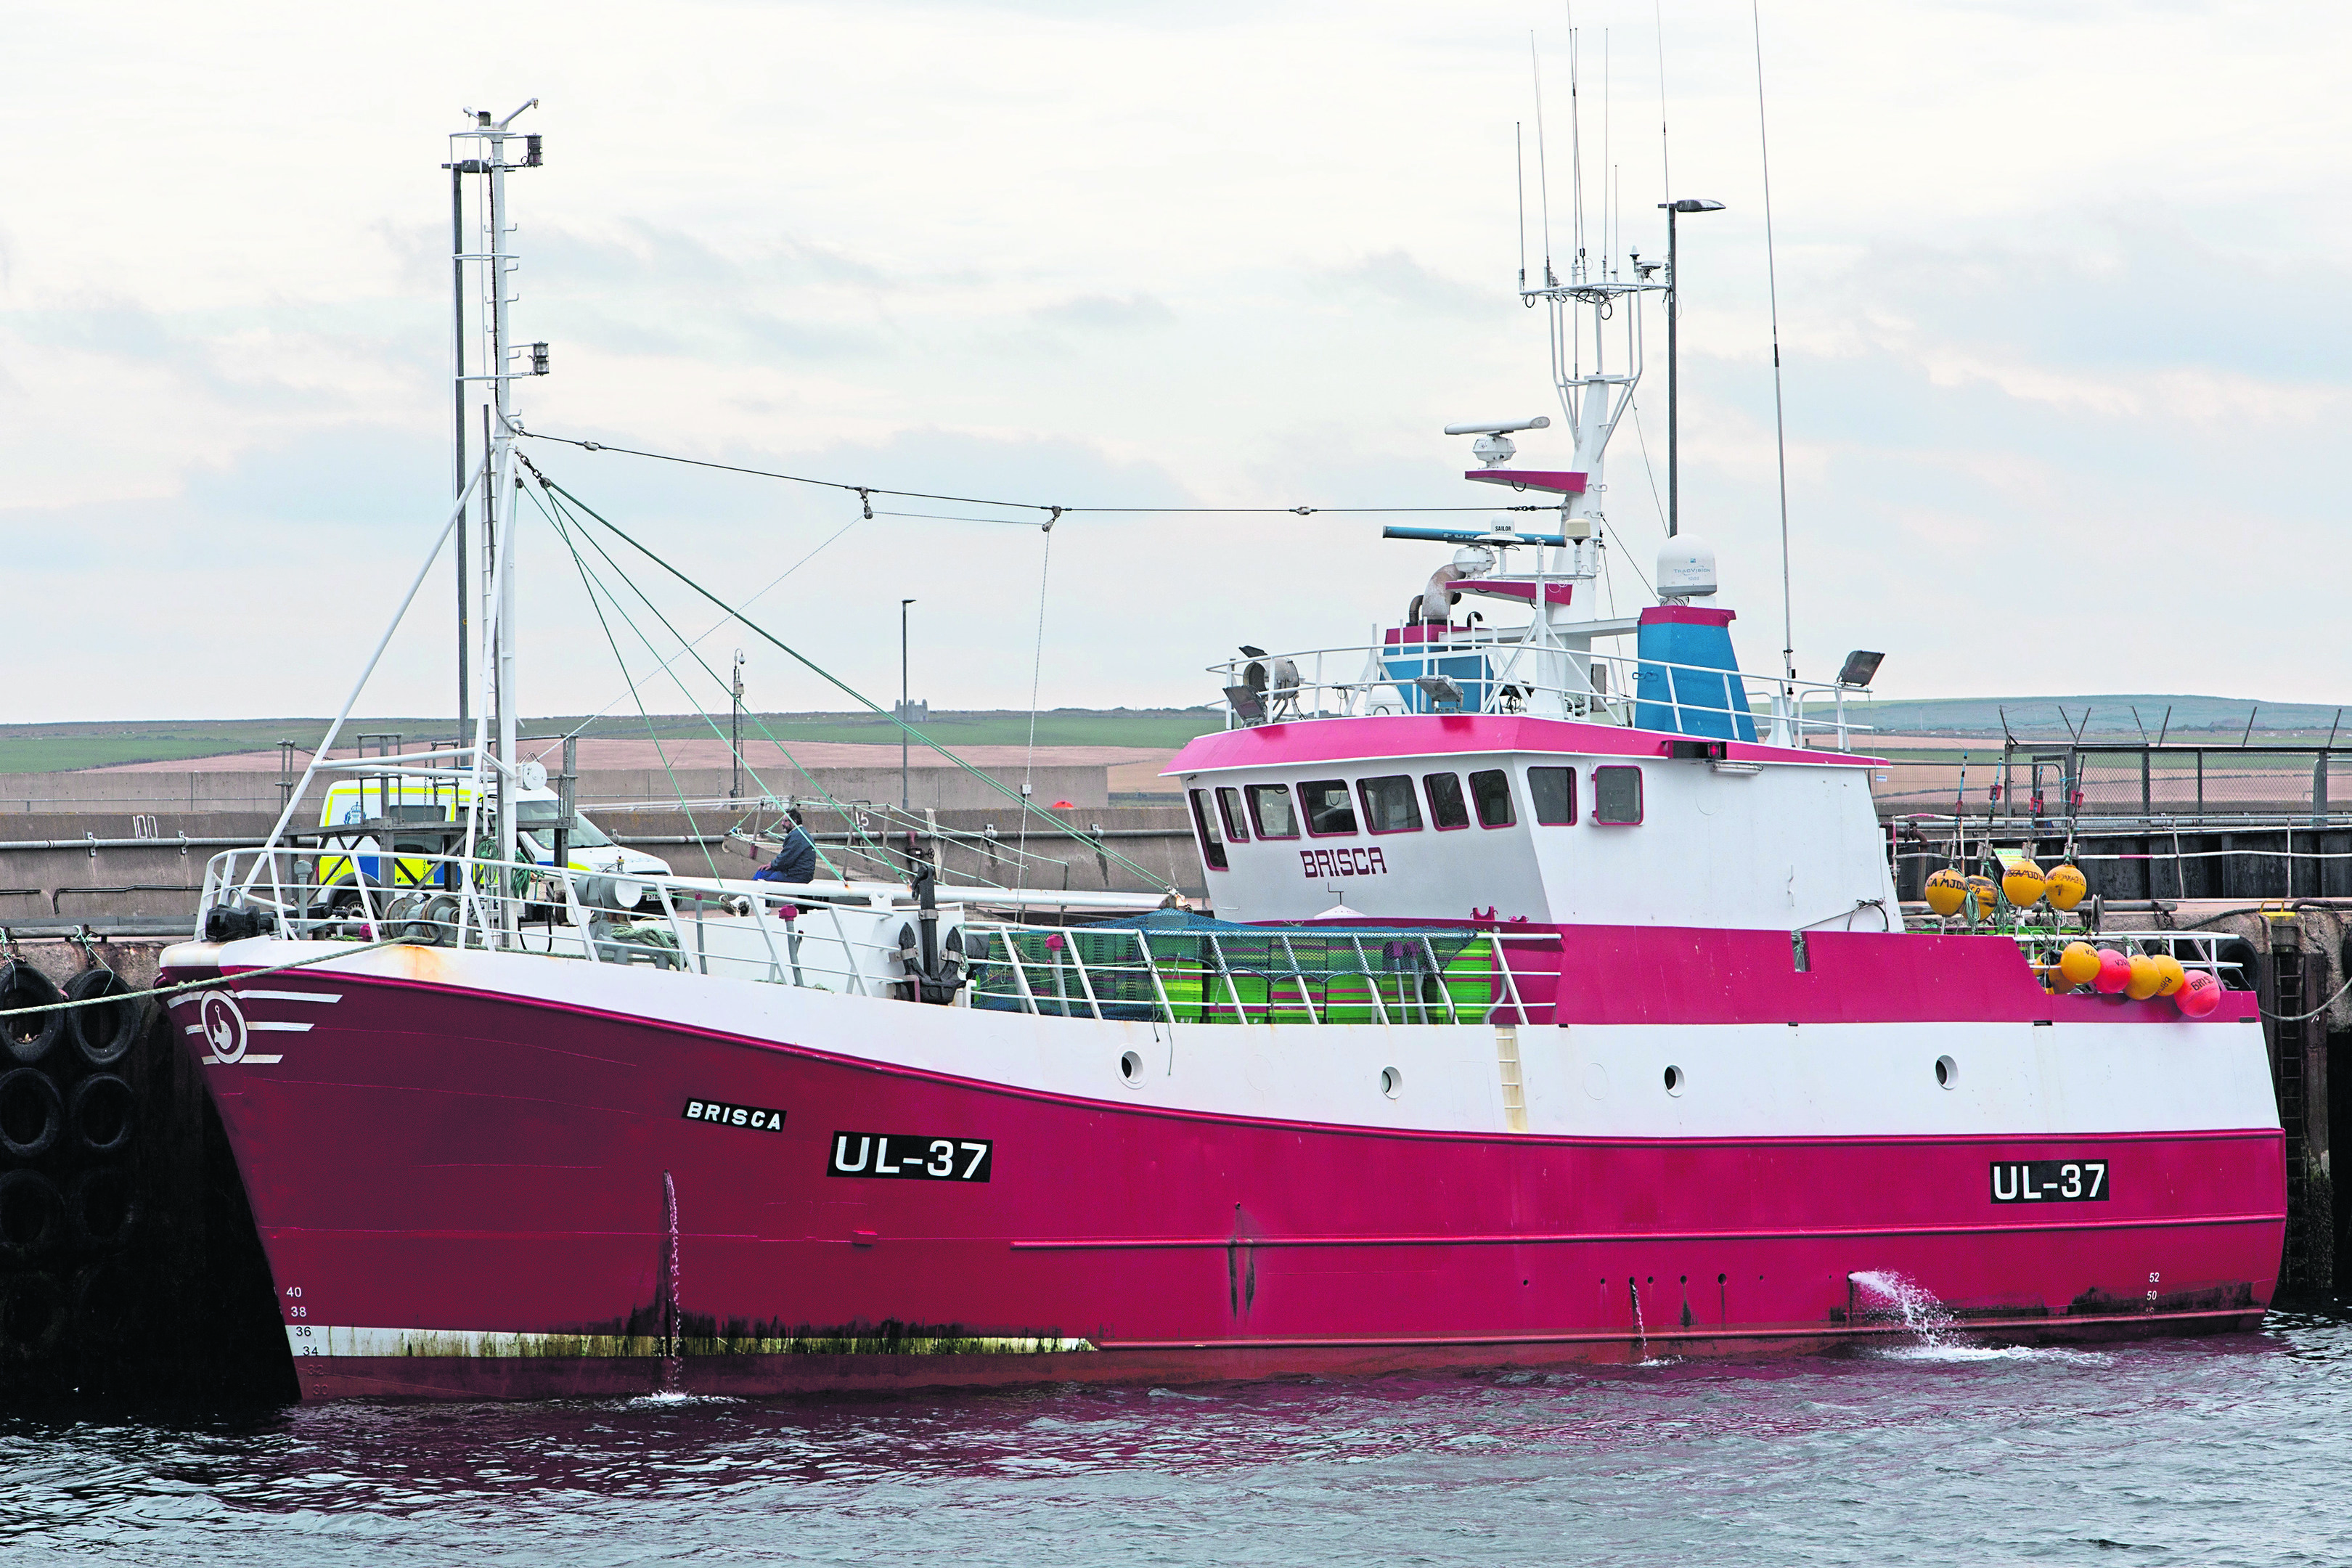 Man arrested after 'stabbing' on fishing boat berthed in